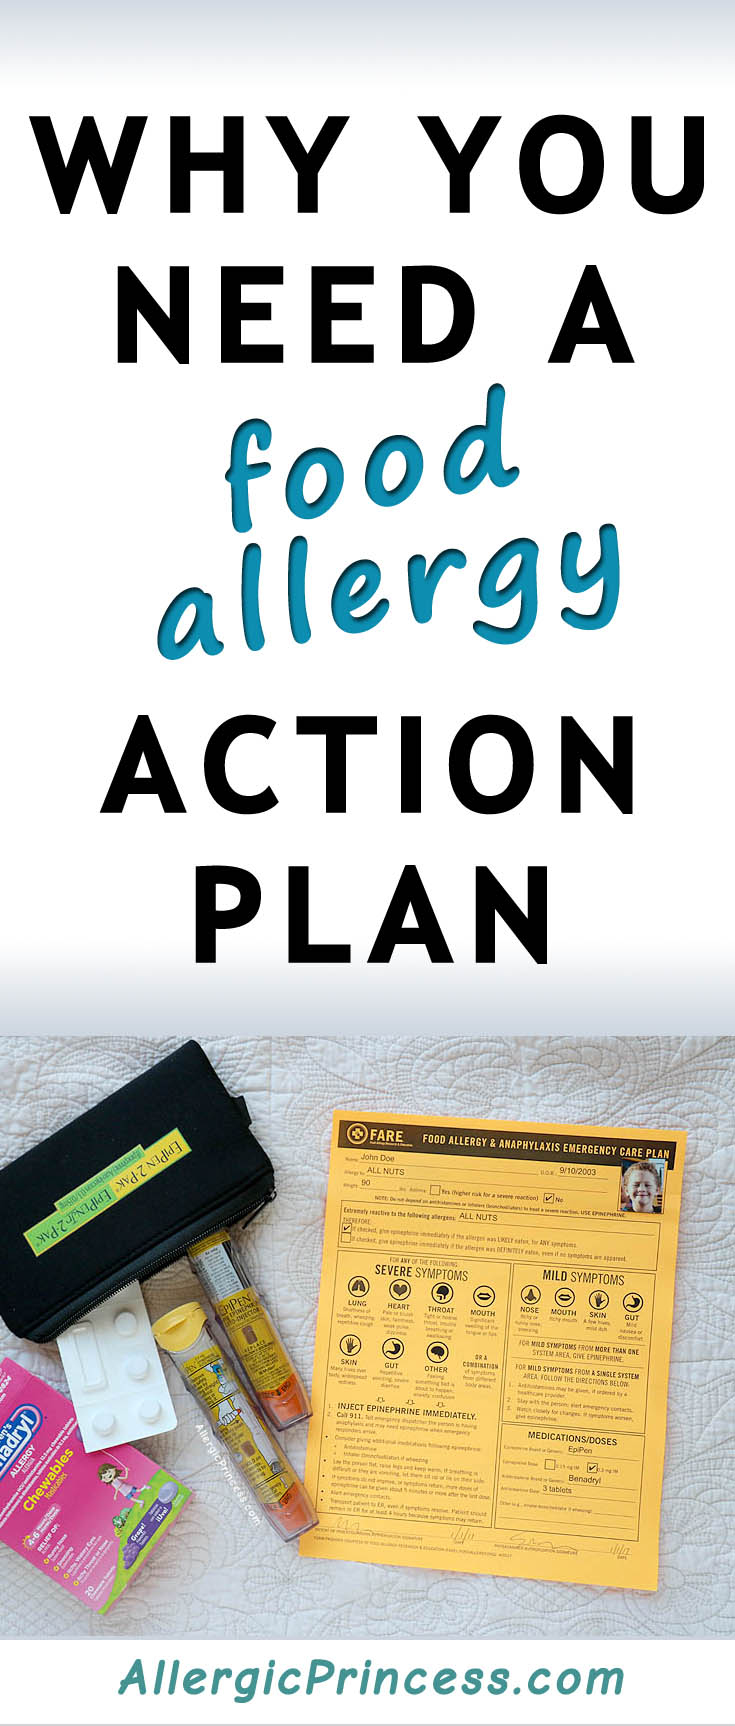 Have an EpiPen? You'll need a Food Allergy Action Plan too!